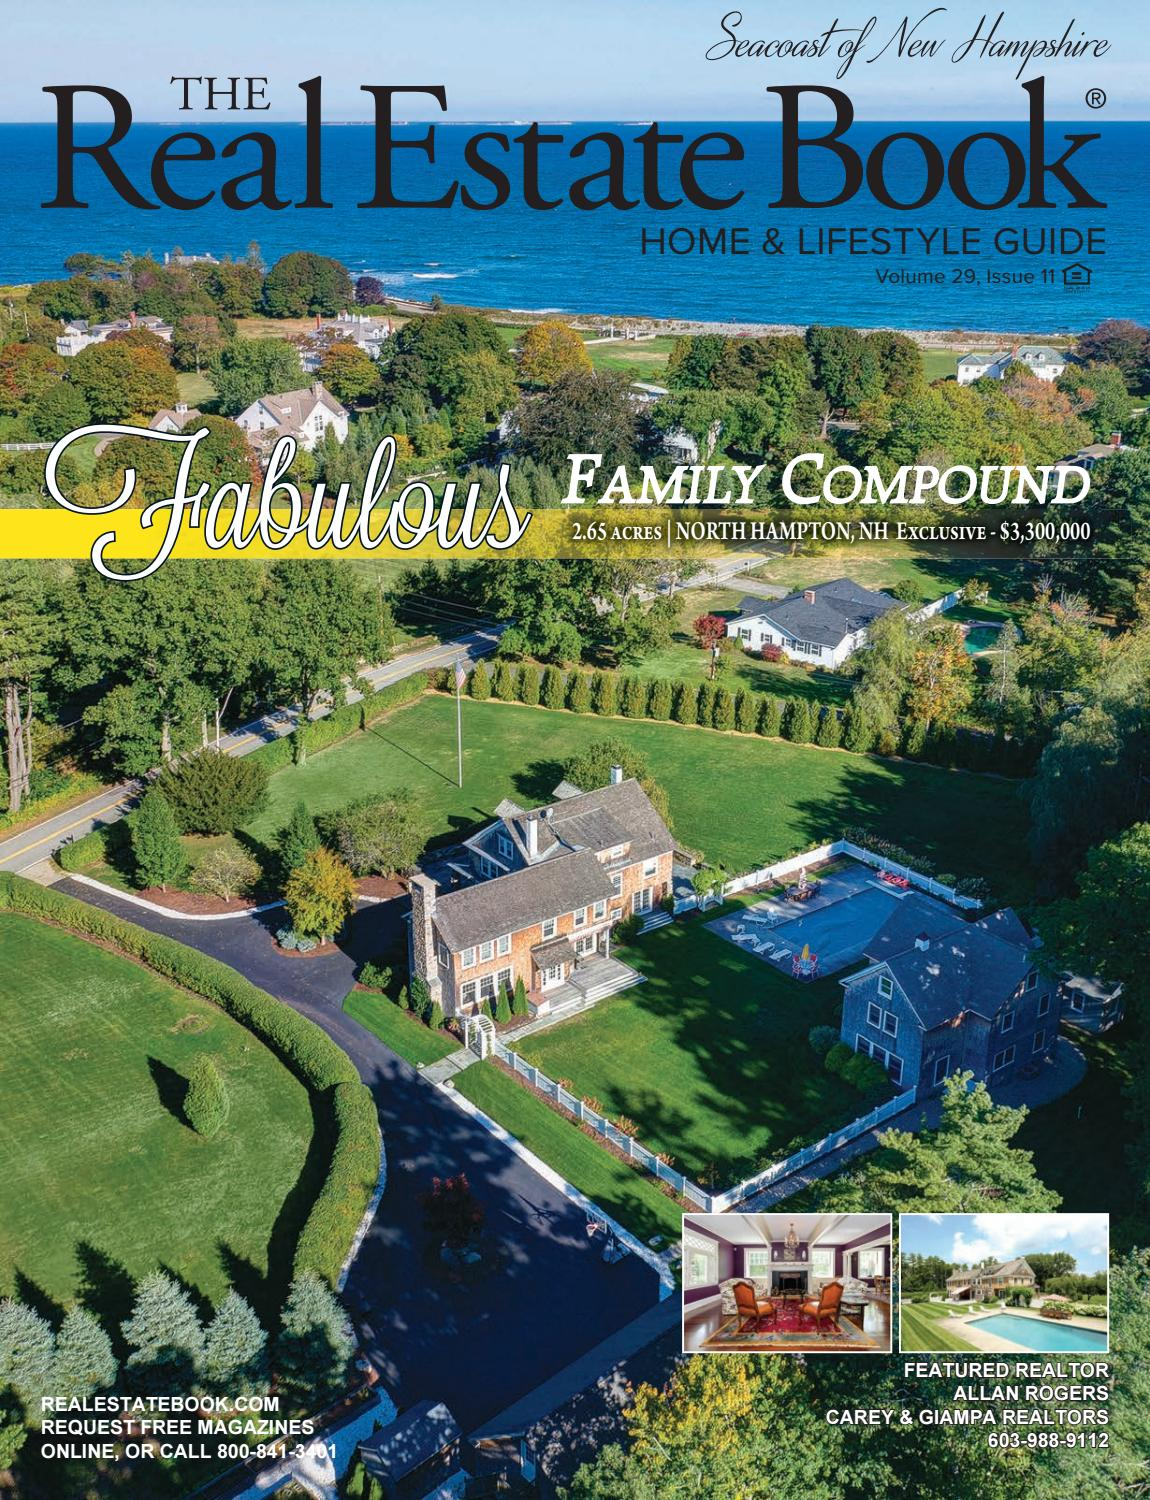 The Real Estate Book of Seacoast of New Hampshire by DFLYDesigns - issuu